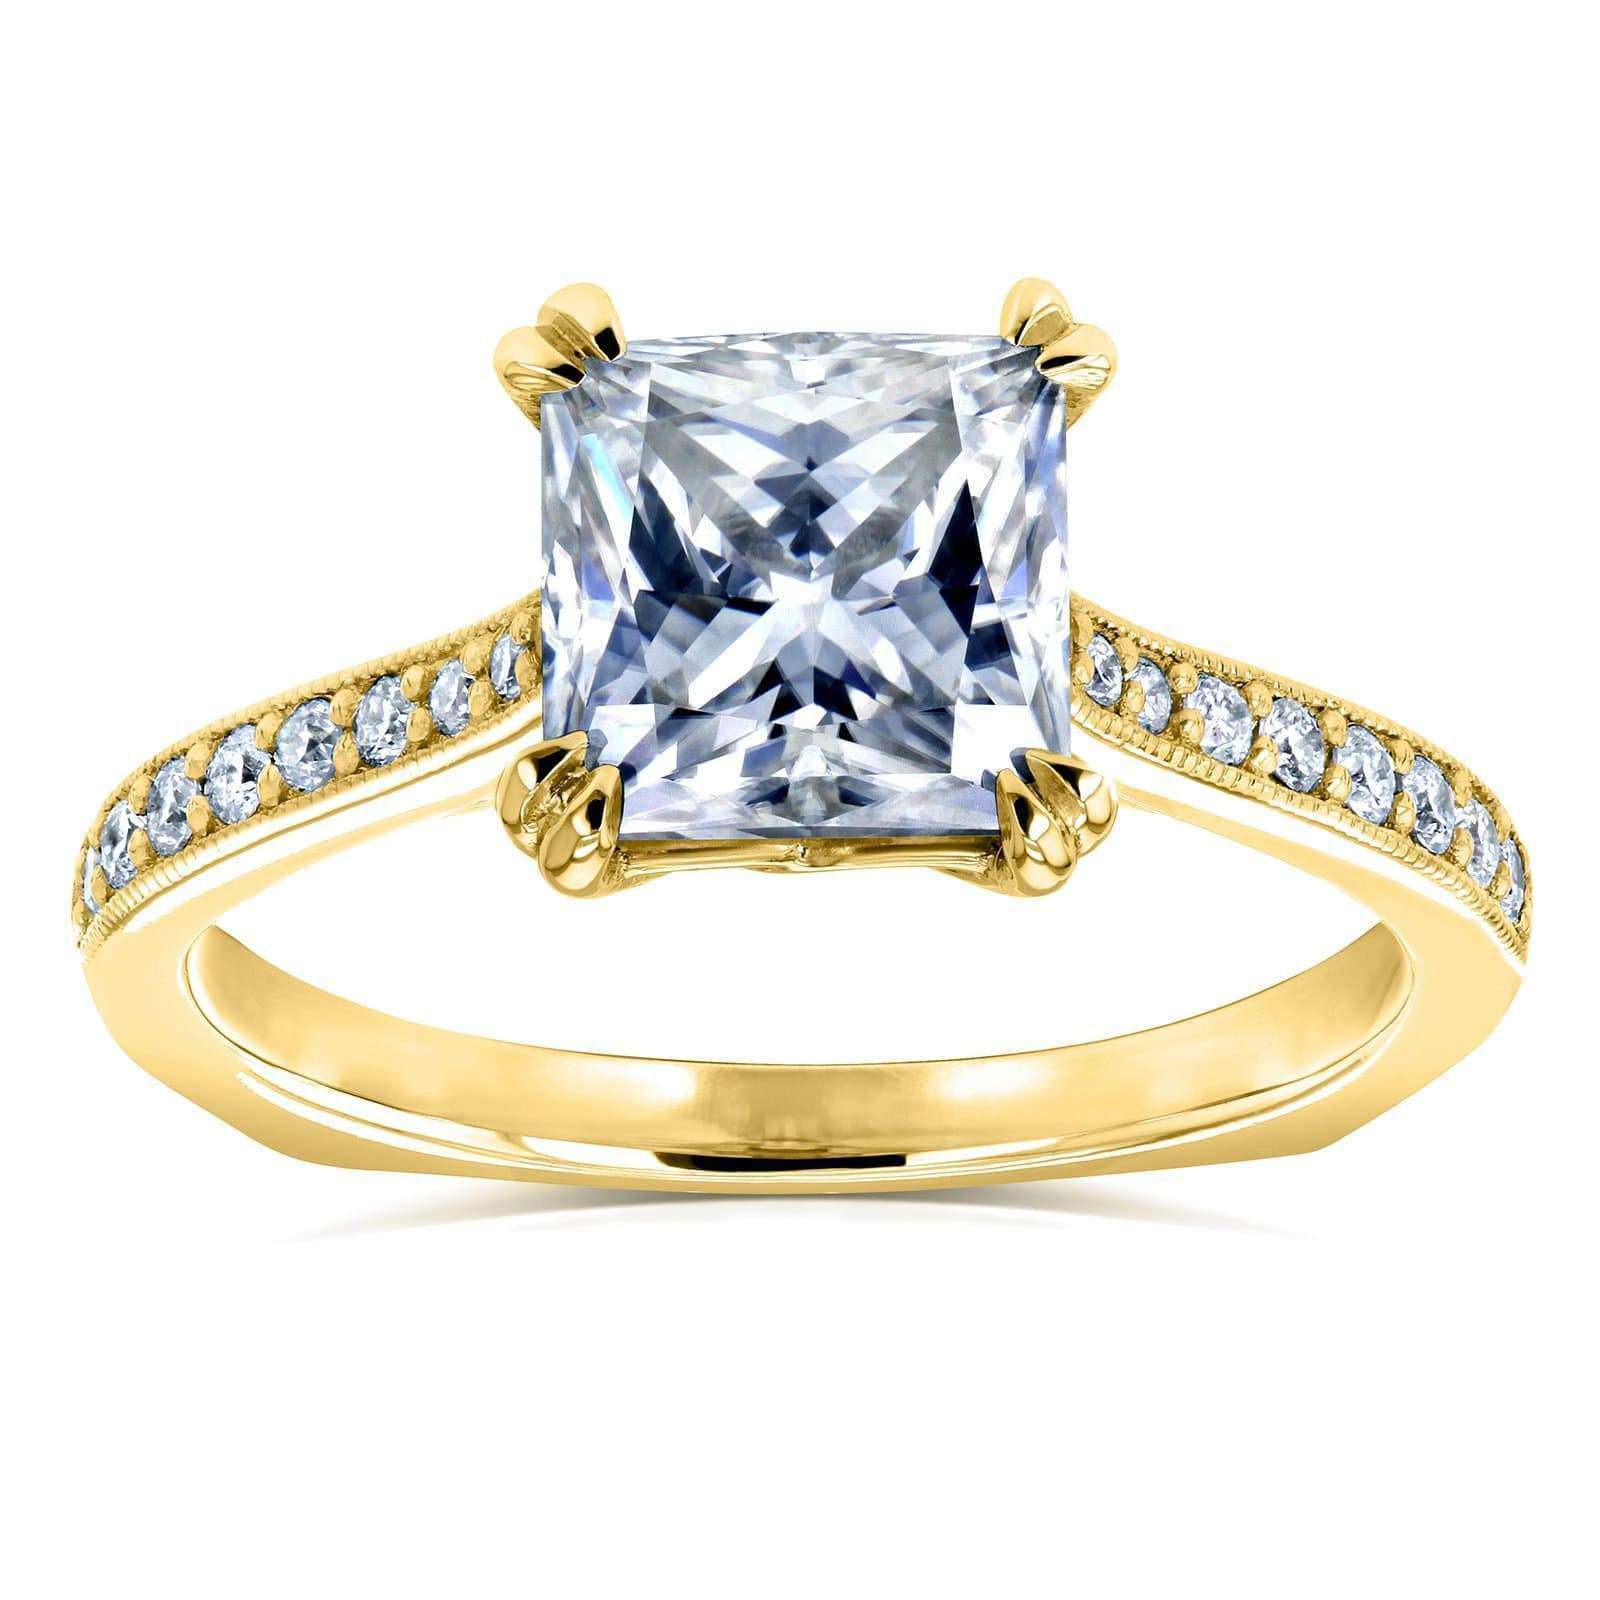 Compare Princess Moissanite and Diamond Square Shank Trellis Engagement Ring  2 1/10 CTW 14k Yellow Gold (FG/VS GH/I) - 6.5